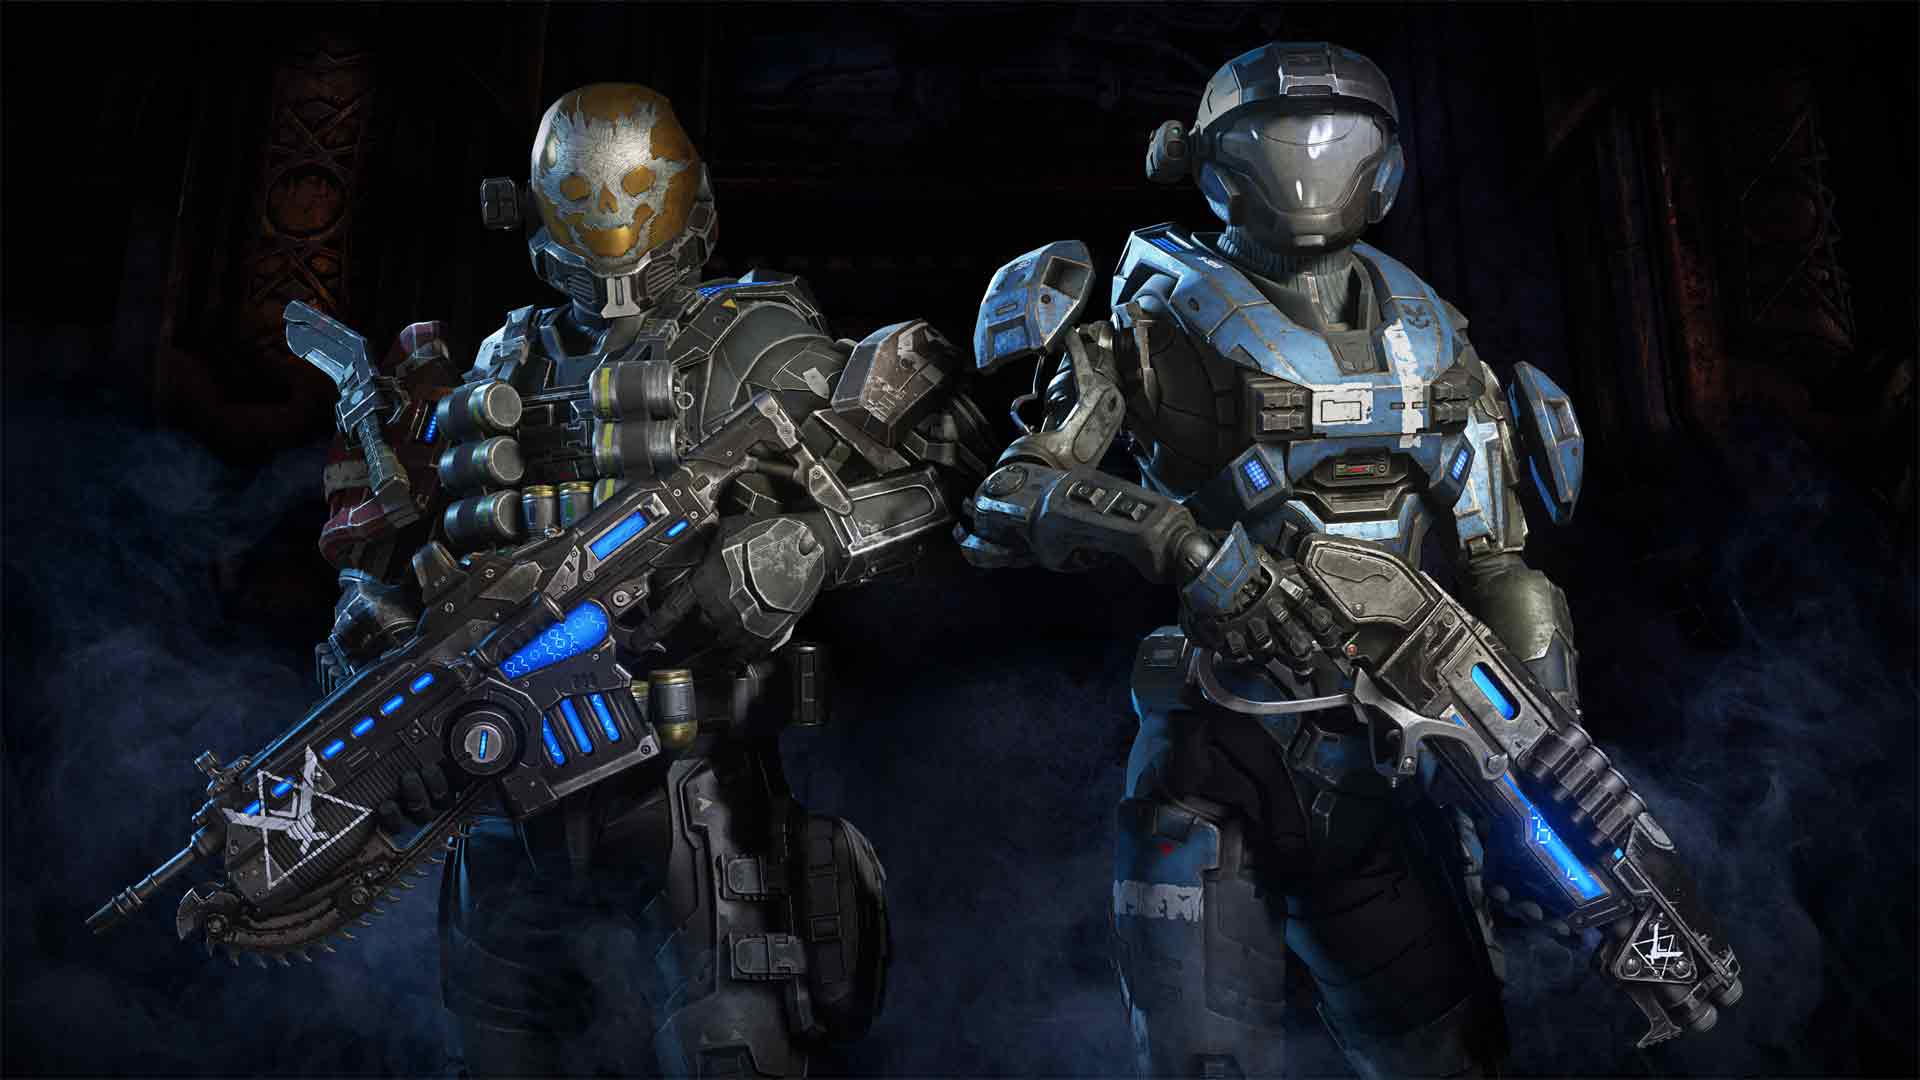 Gears 5 Halo Reach Character Pack